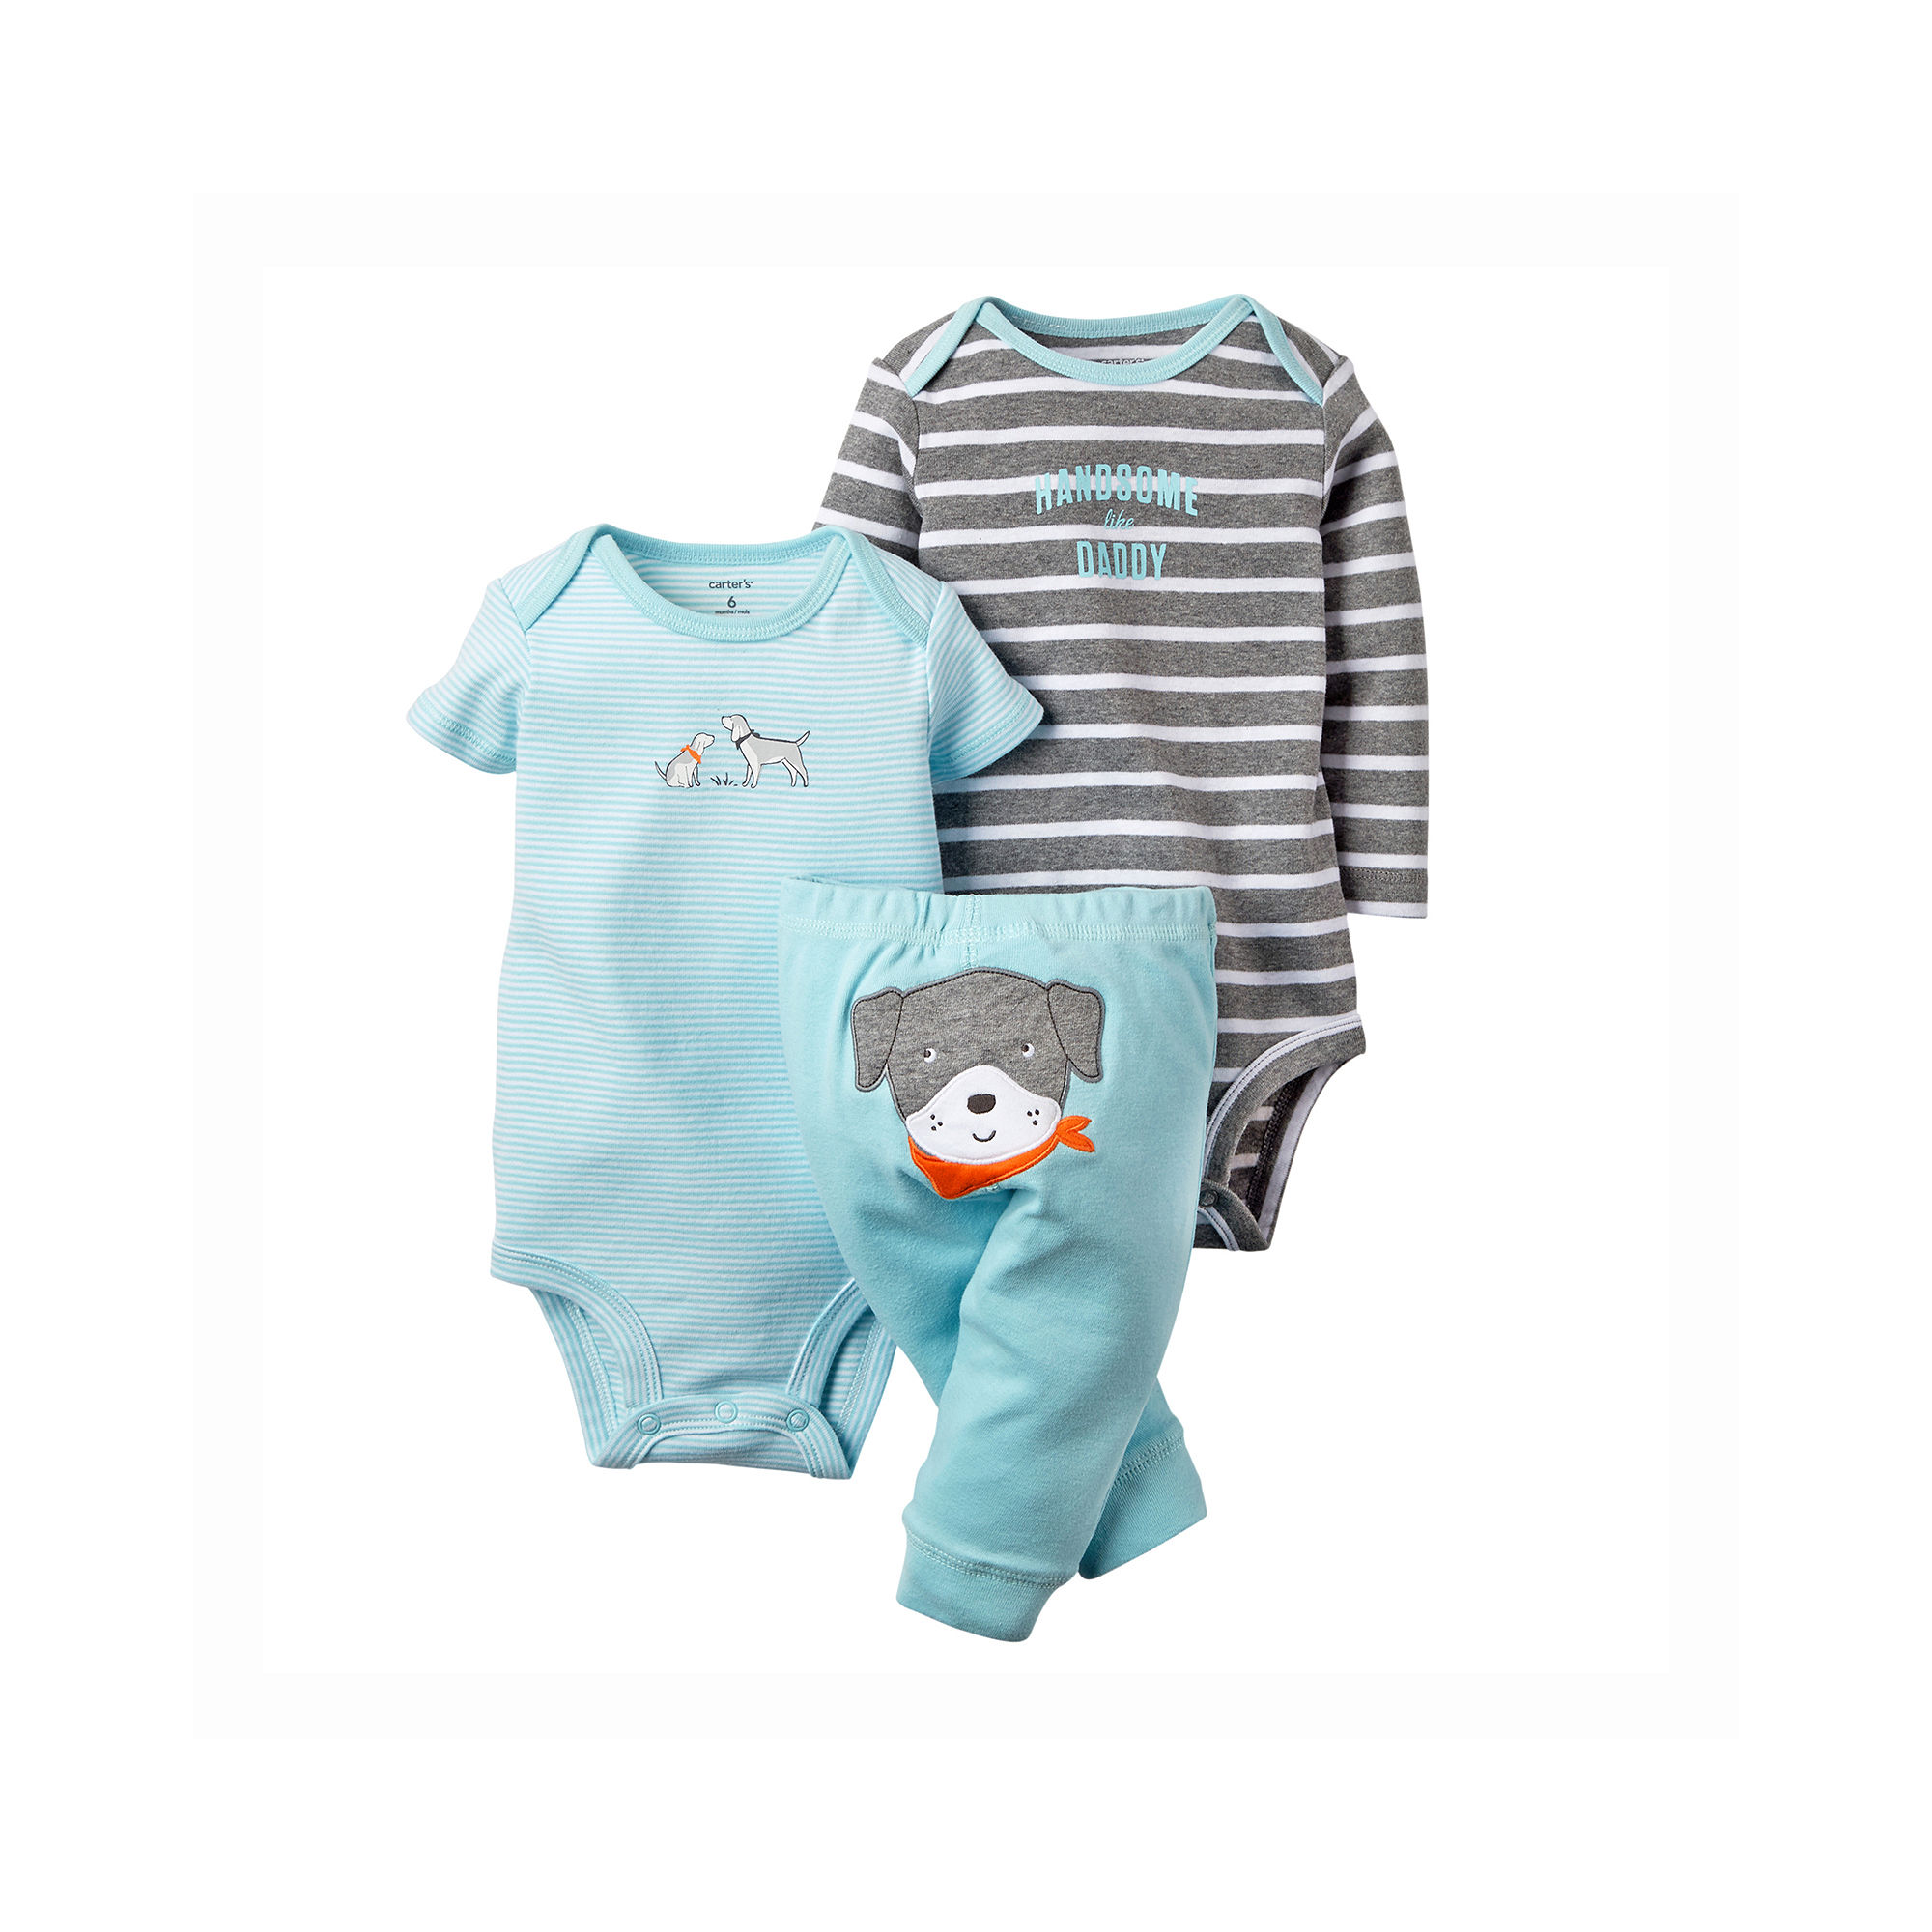 c5431d8af UPC 888510756682 product image for Carter's Bodysuits and Pants Set - Baby  Boys newborn-24m ...